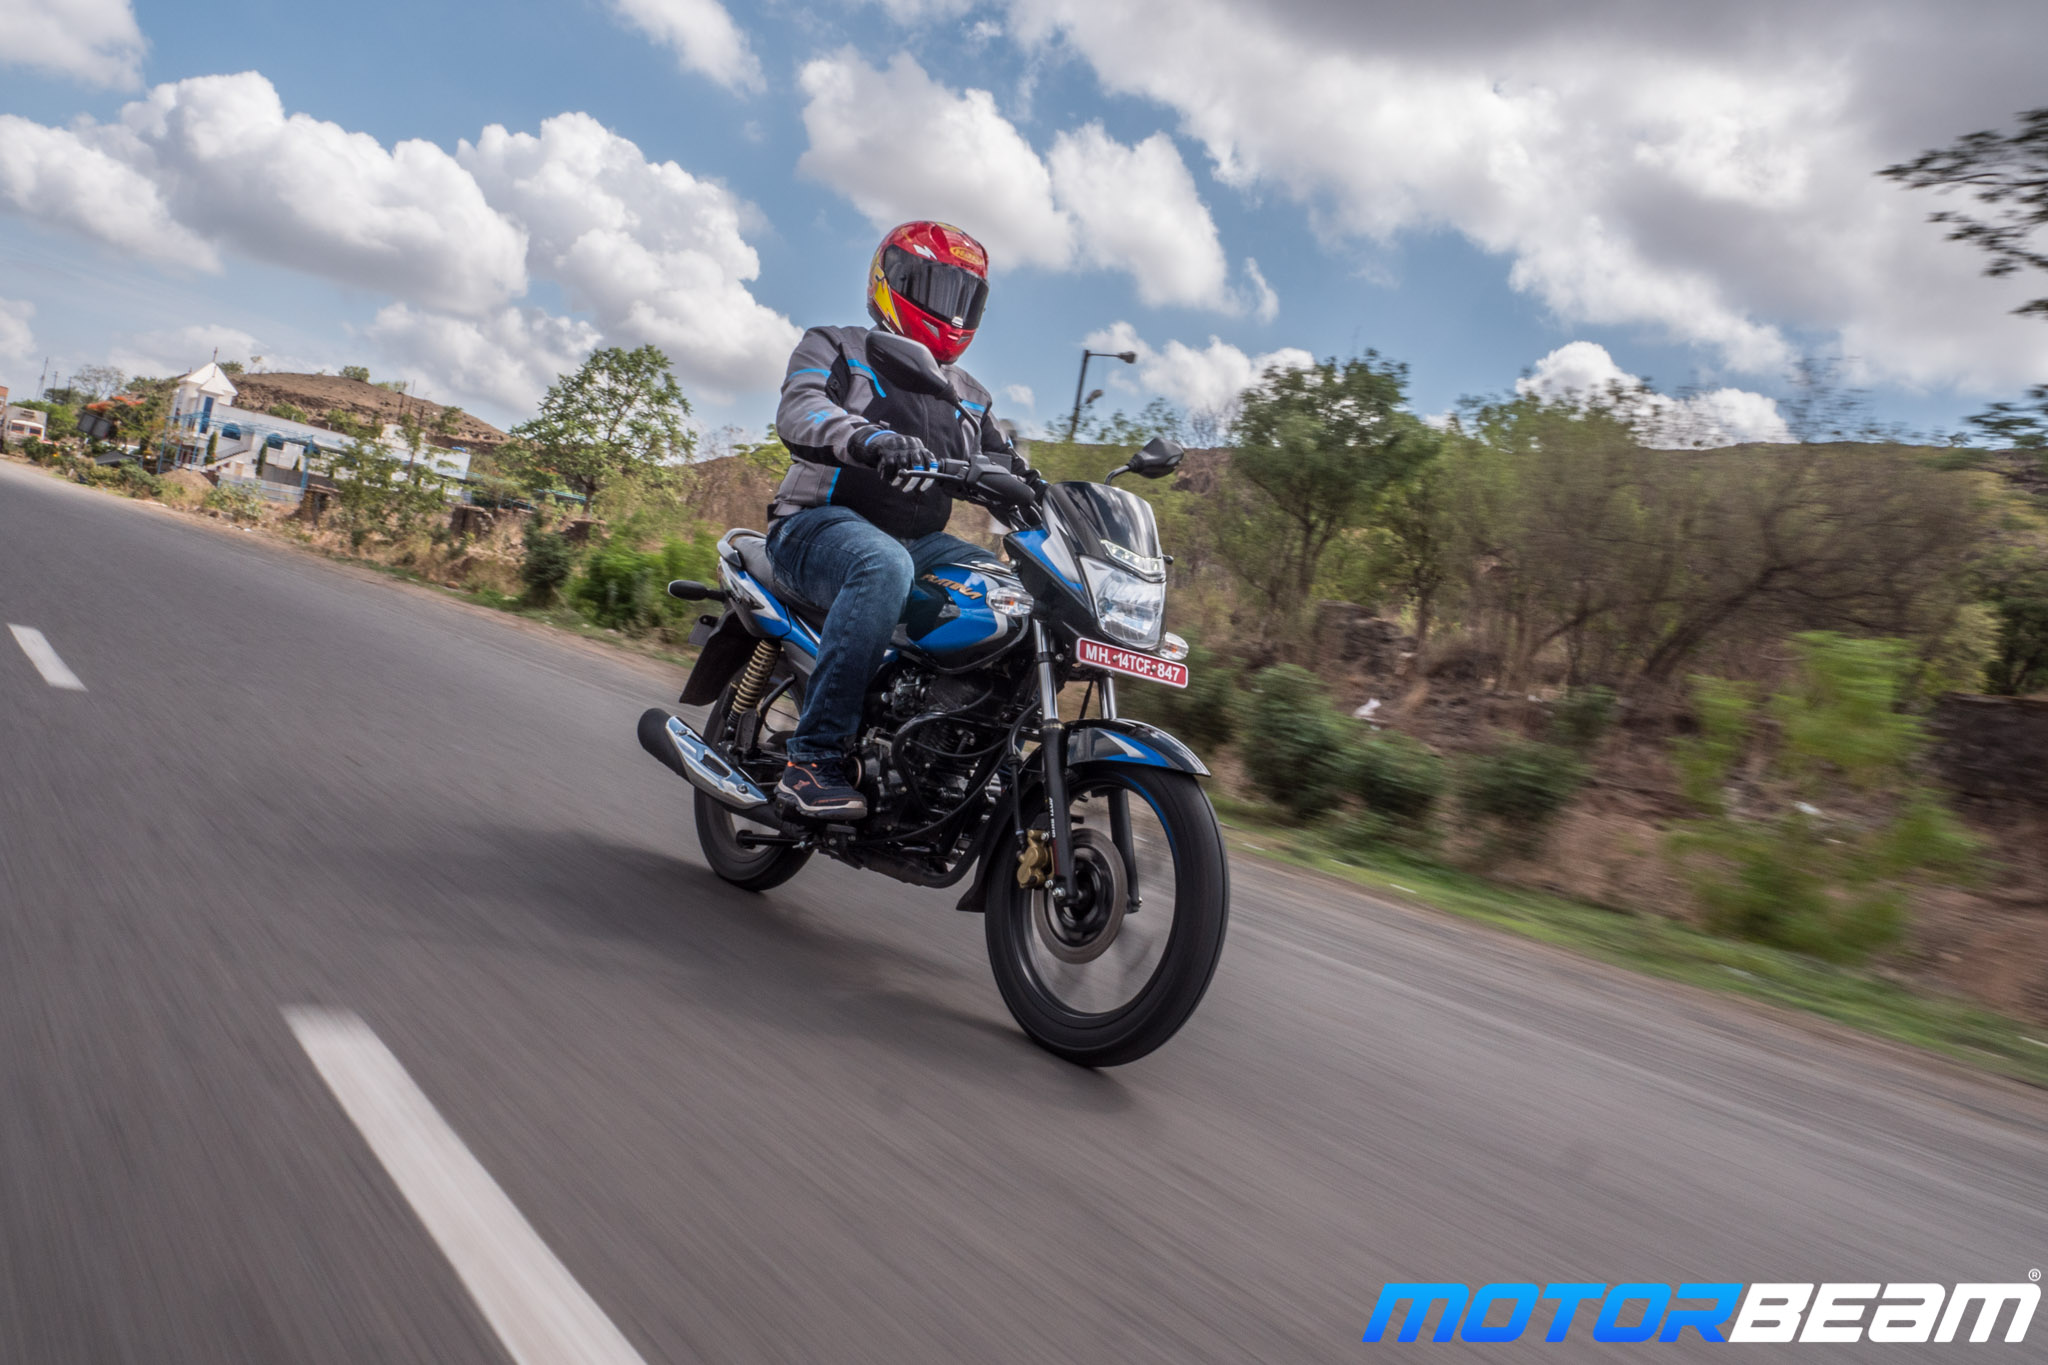 Bajaj Platina 110 H Gear BS6 Launched, Priced At Rs. 59,802/-